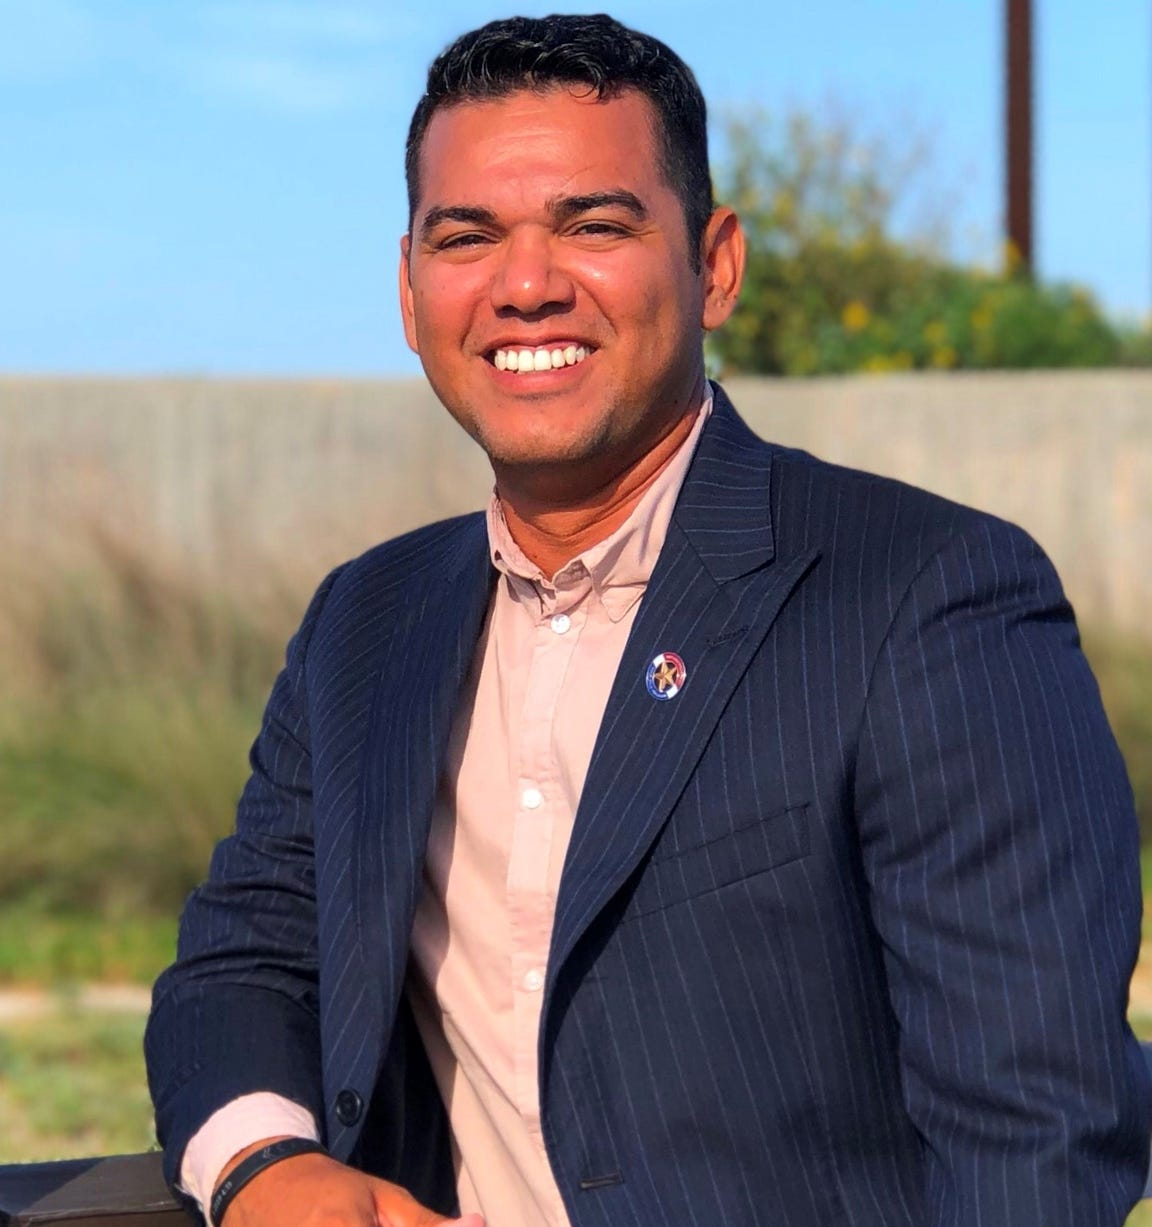 Corpus Christi City Council District 5 candidate Eric Rodriguez